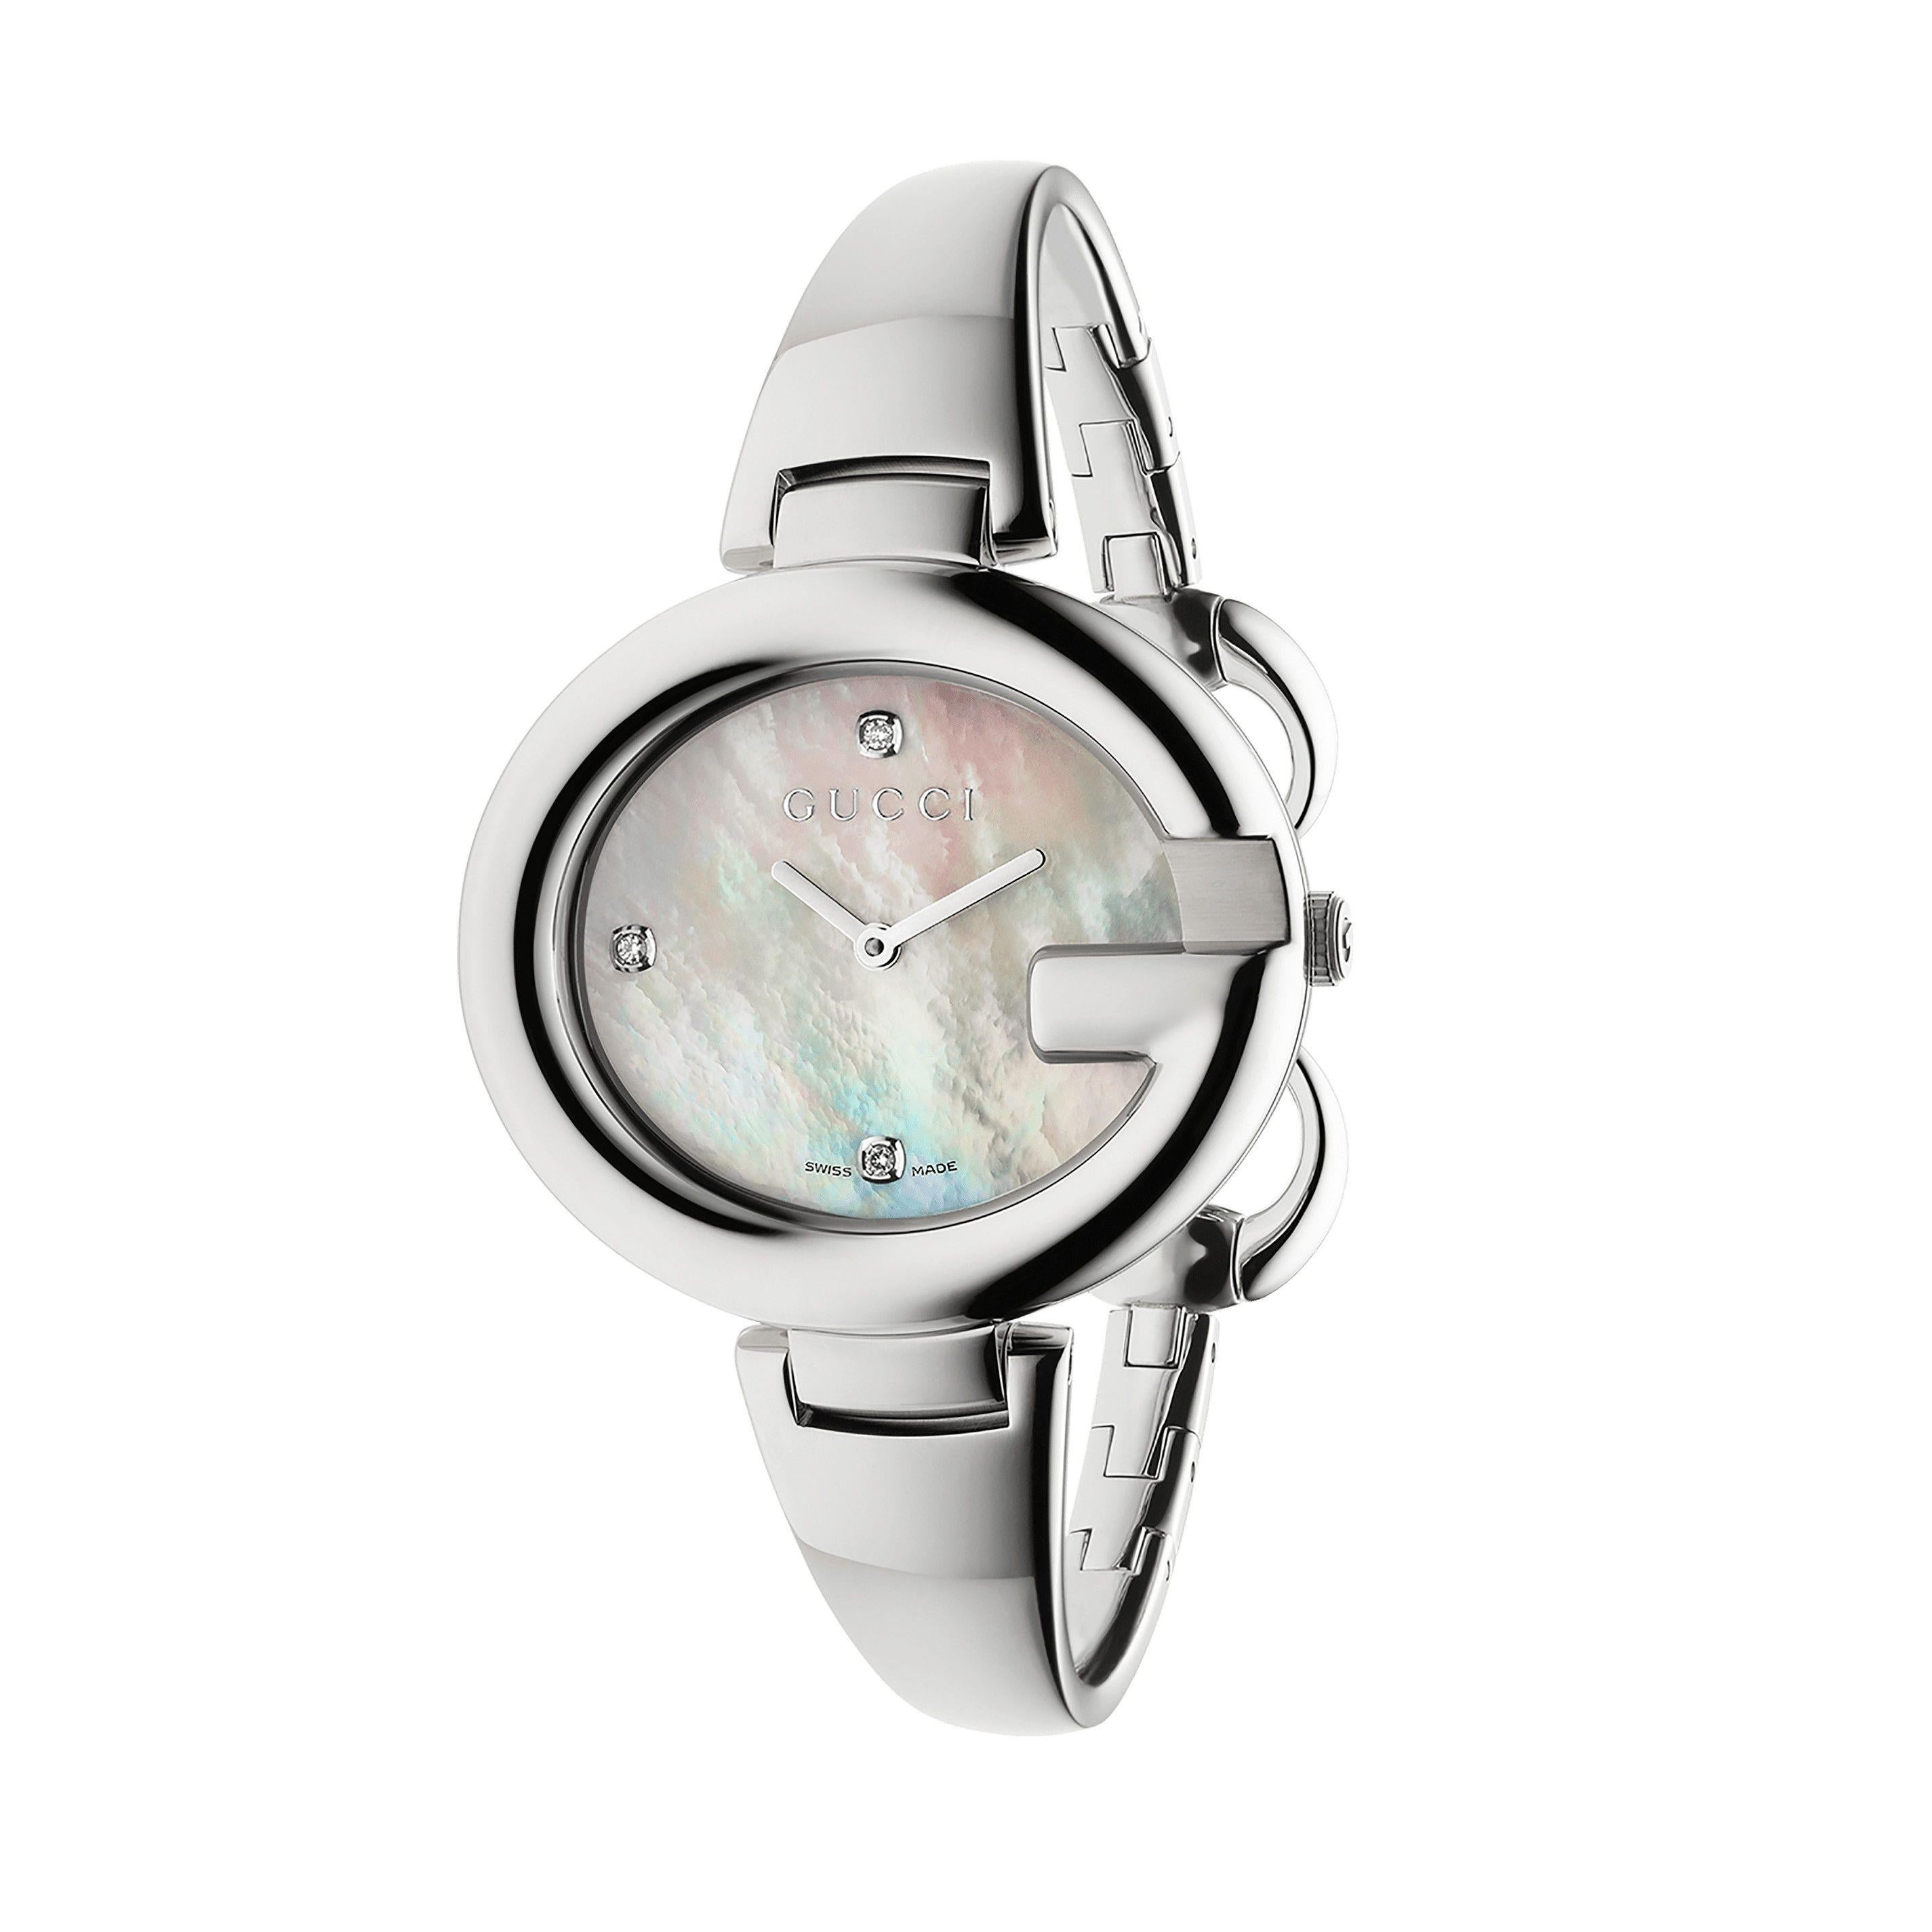 49222ba5447 1980s Gucci Sterling Silver Mother of Pearl Watch with Silver Gucci Charm  For Sale at 1stdibs